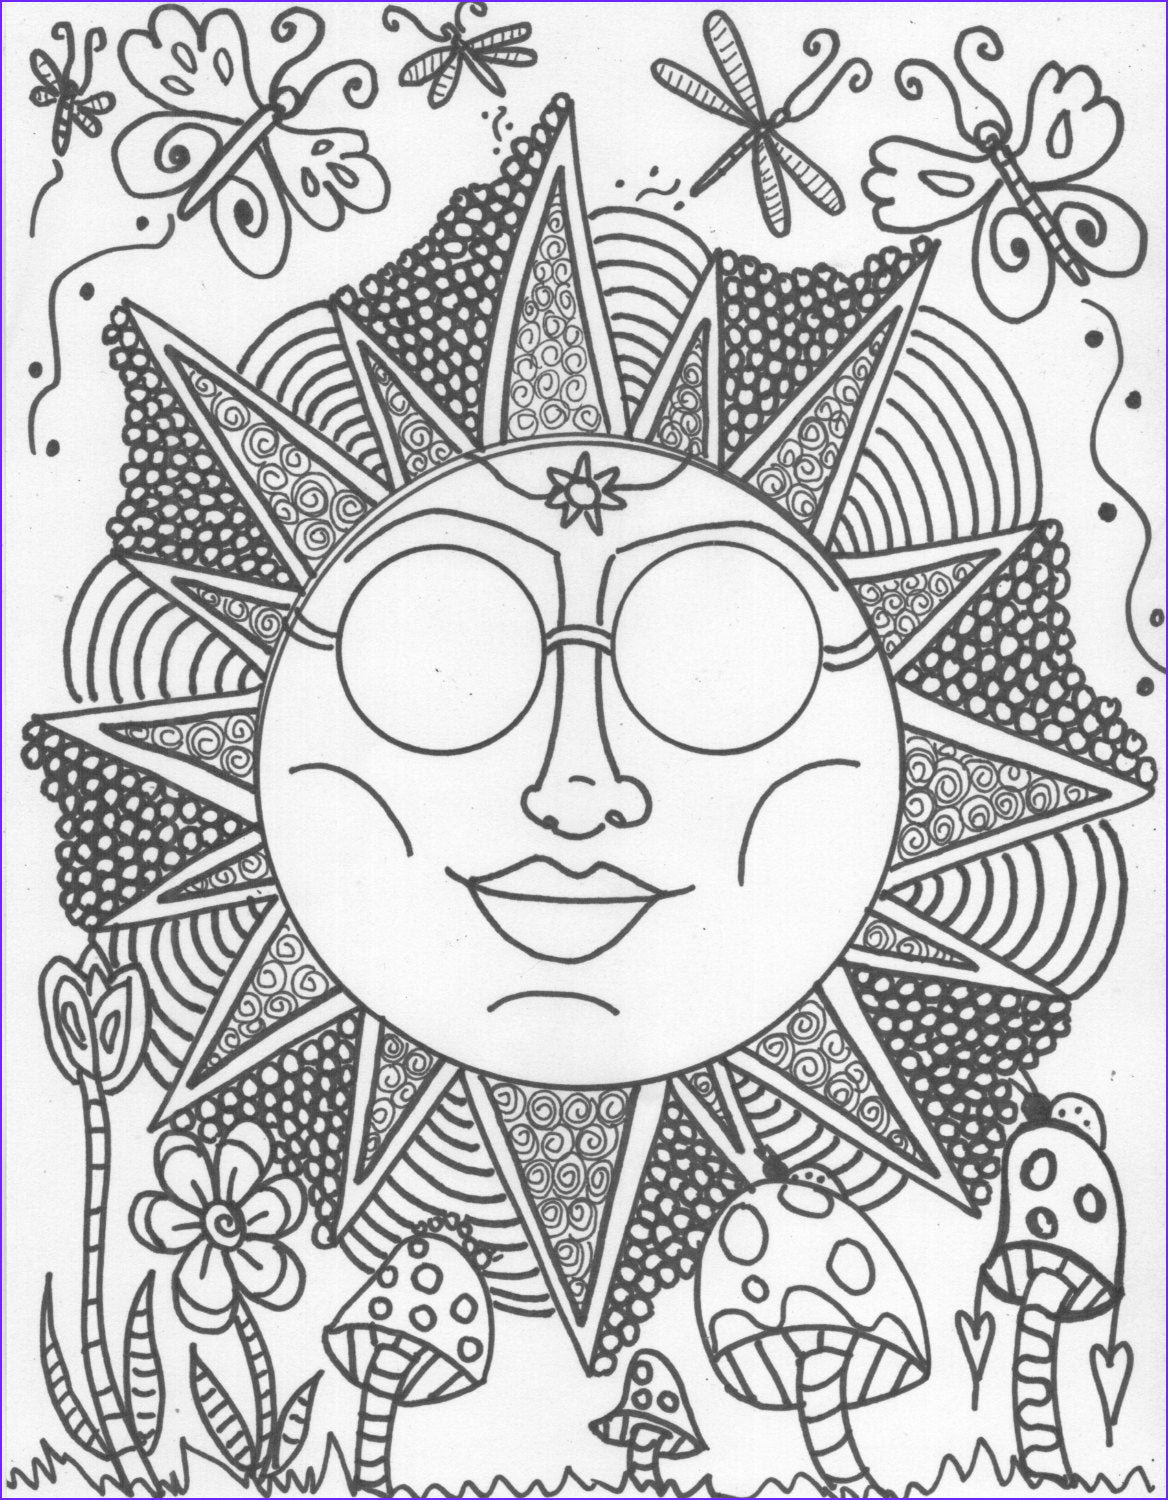 Customized Coloring Book New Collection Hippie Custom Coloring Book Coloring Book Pages by